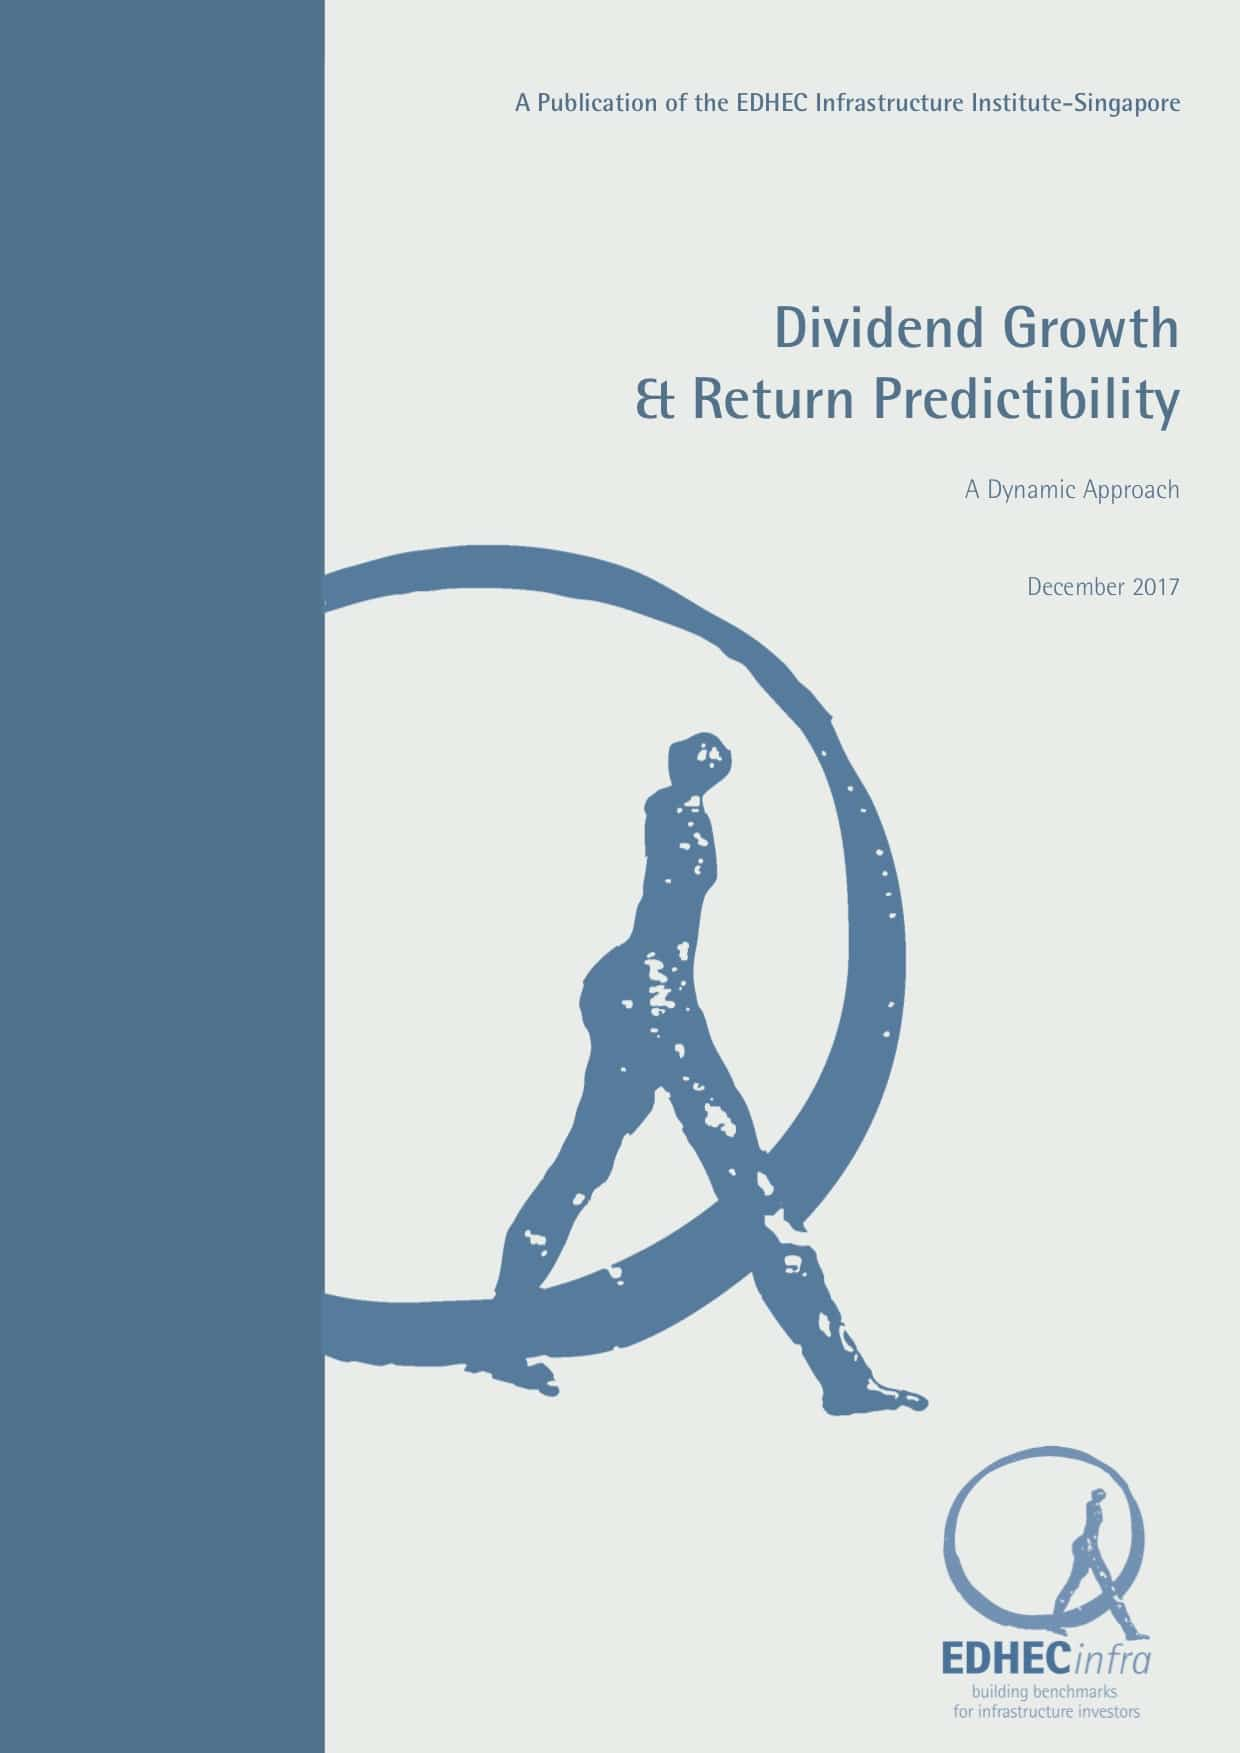 Dividend Growth & Return Predictability: A Dynamic Approach